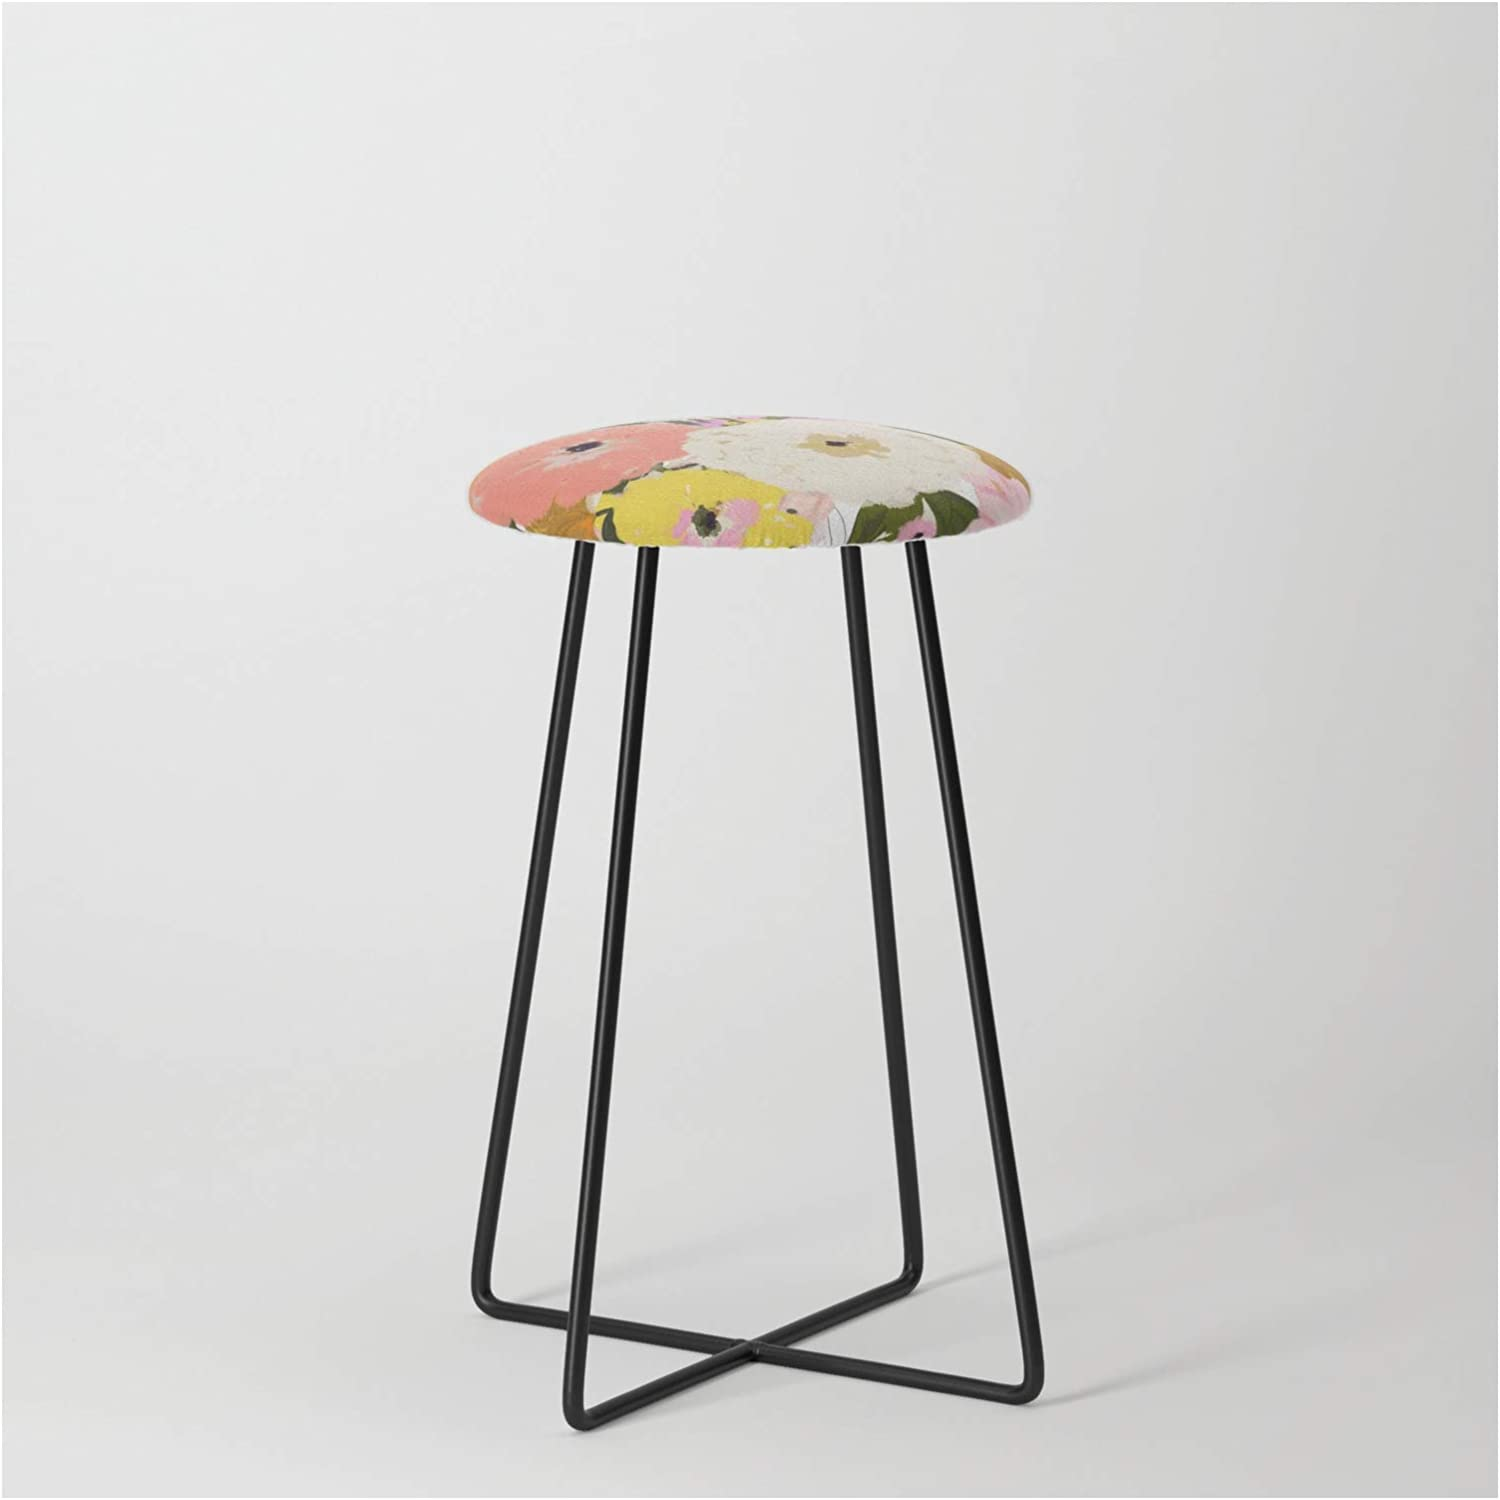 Society6 Max 66% OFF Spring Floral by Alison Janssen on - Blac New product!! Stool Counter